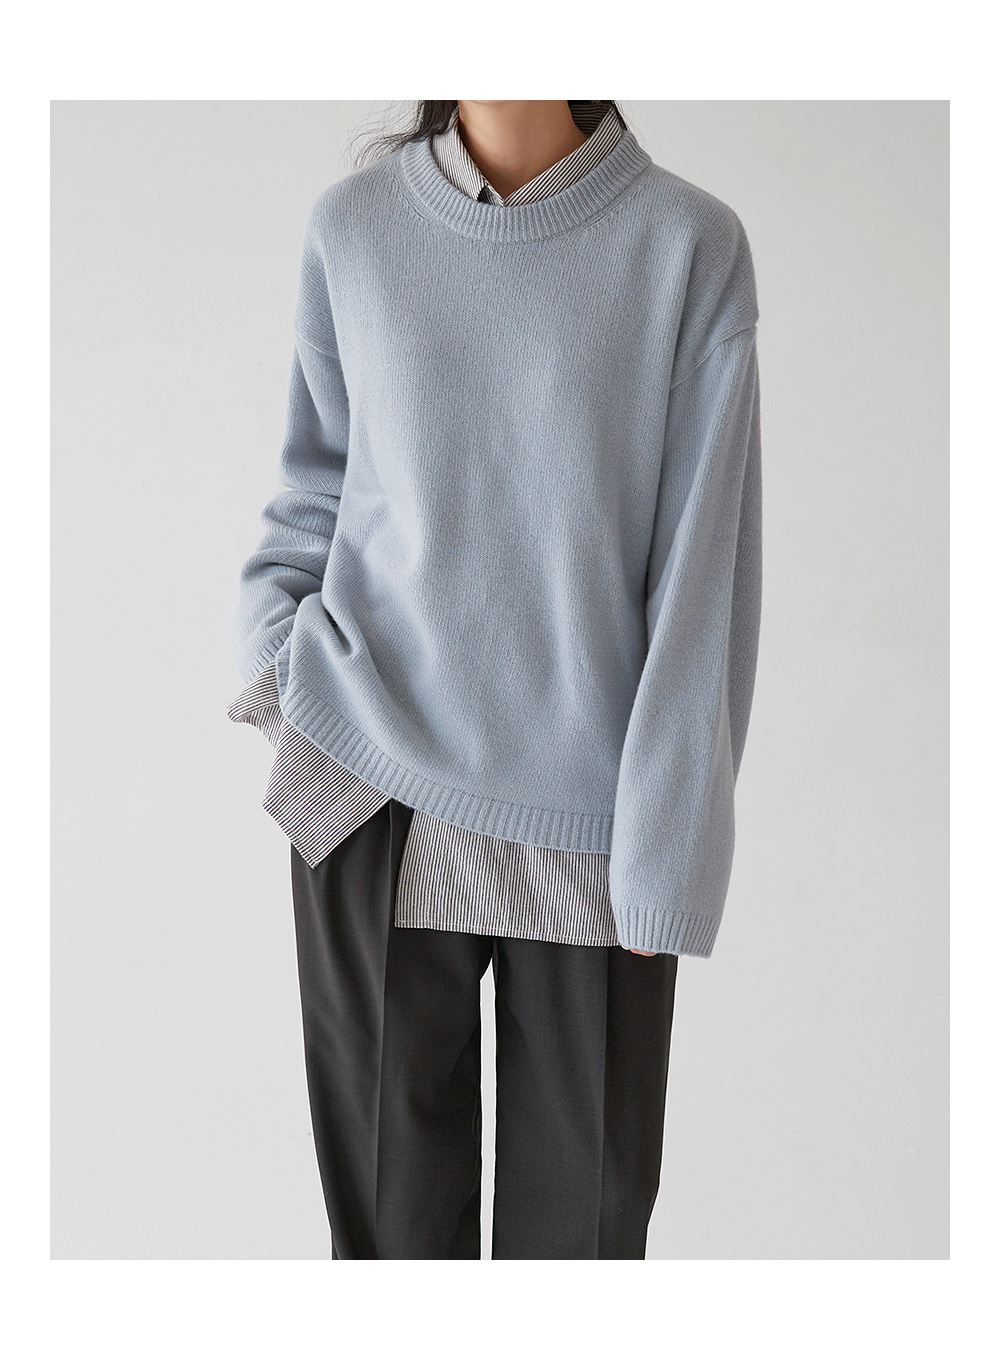 soft cream wool knit